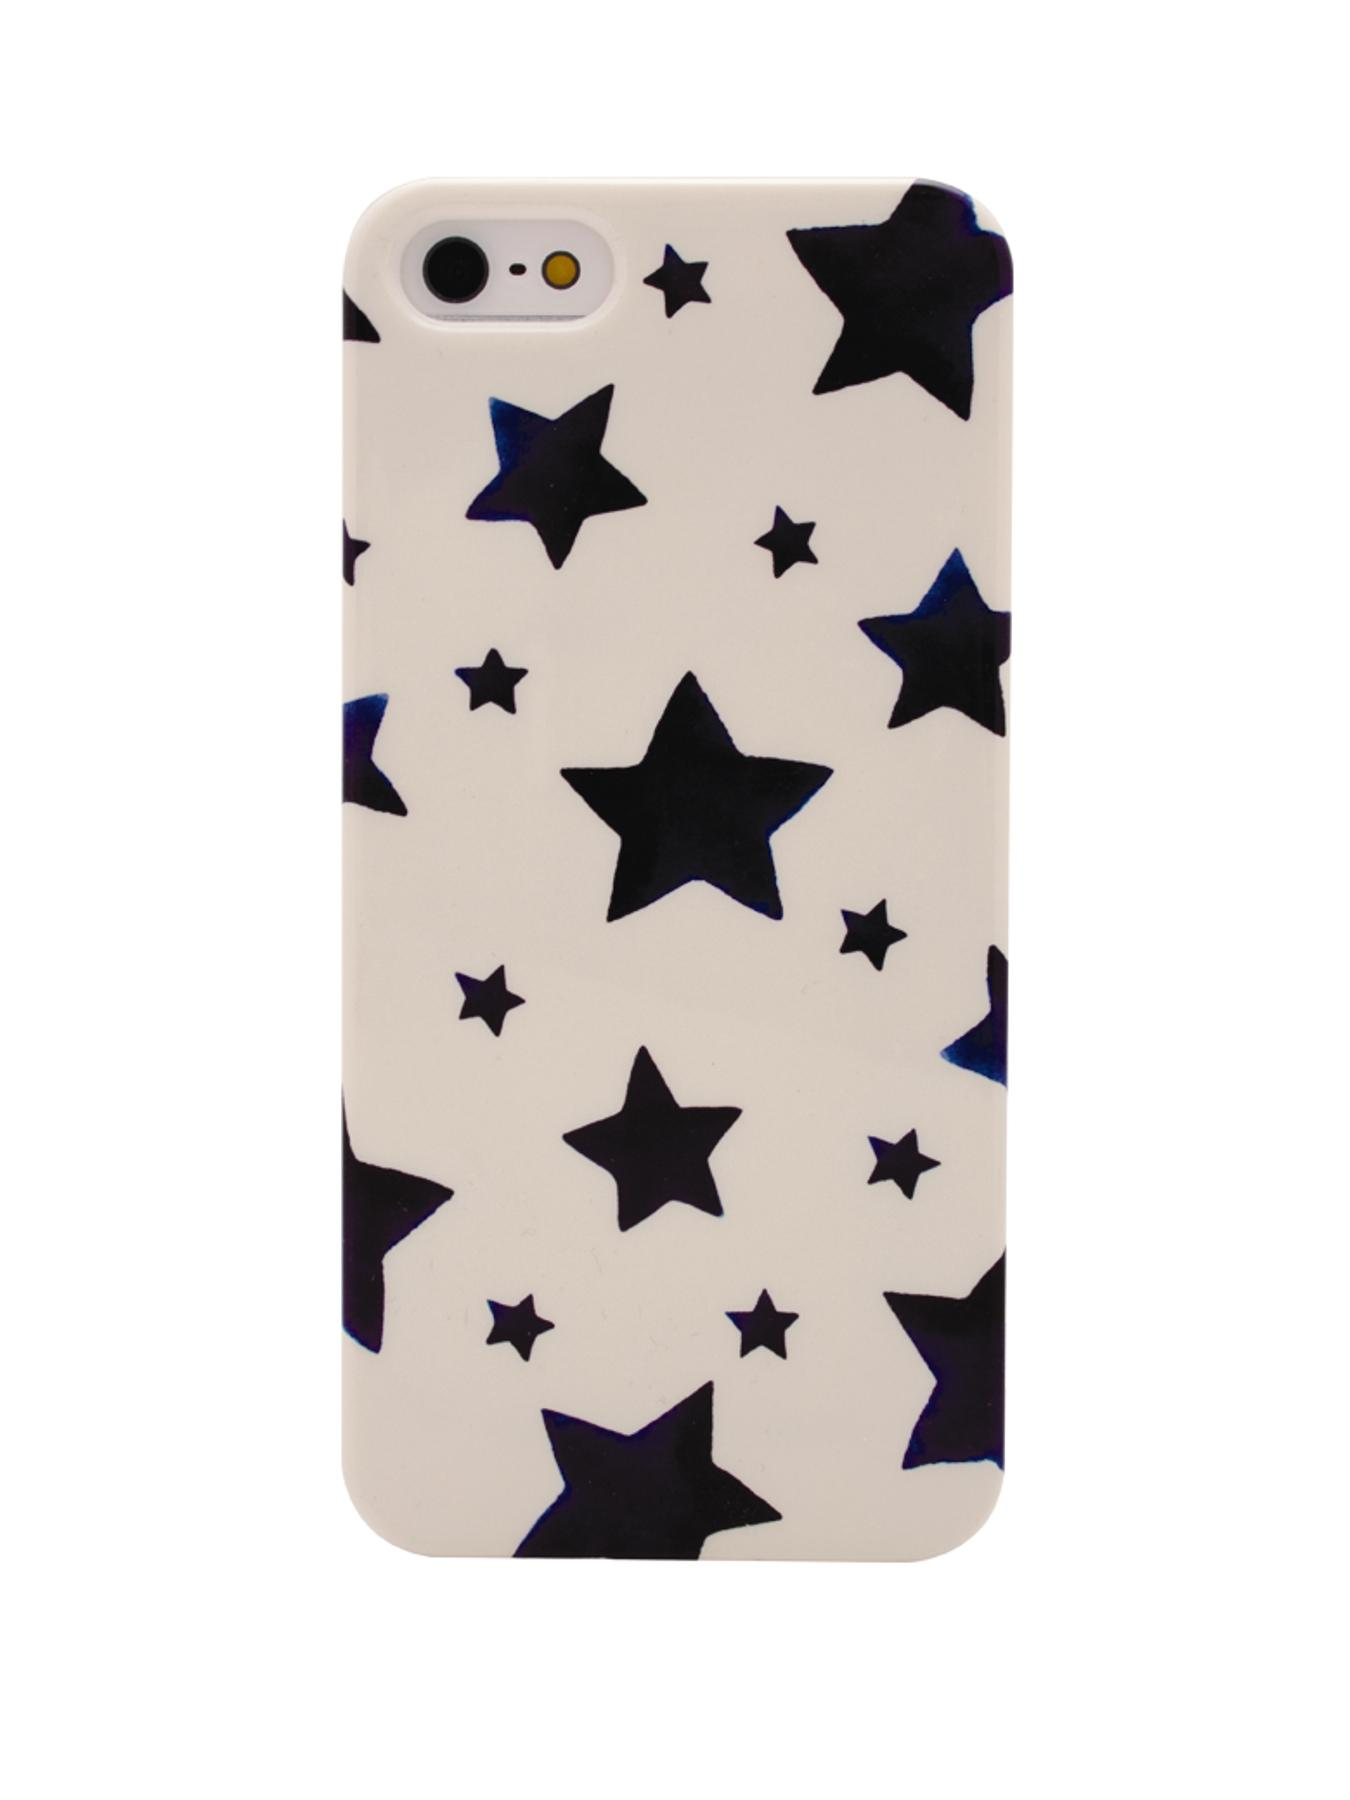 Emma Bridgewater Starry Skies iPhone 5/5S Case at Very, from Littlewoods